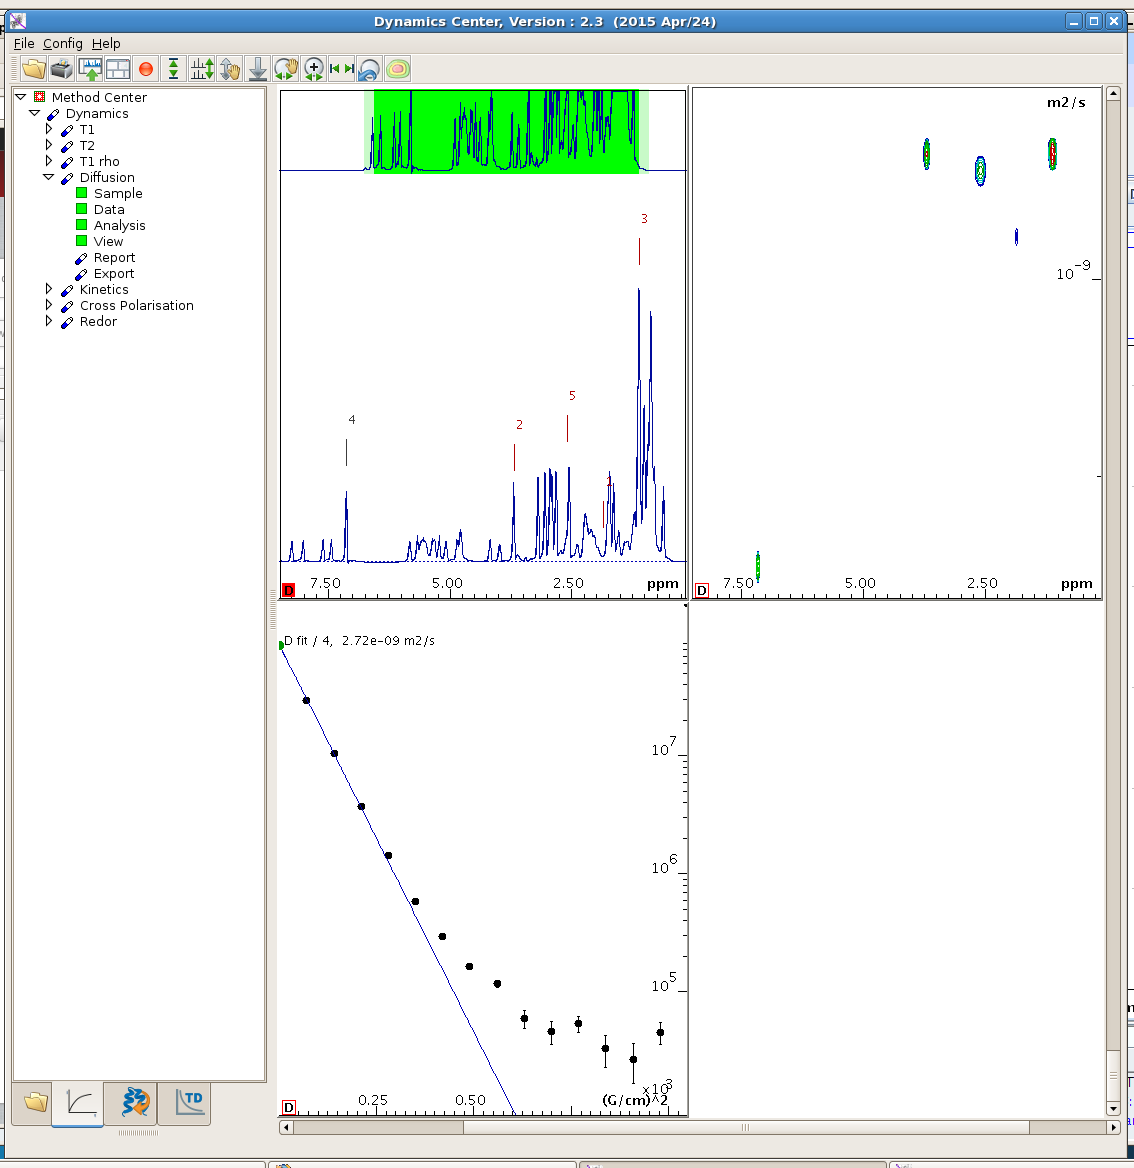 Processing T1/T2, kinetics, and diffusion data using